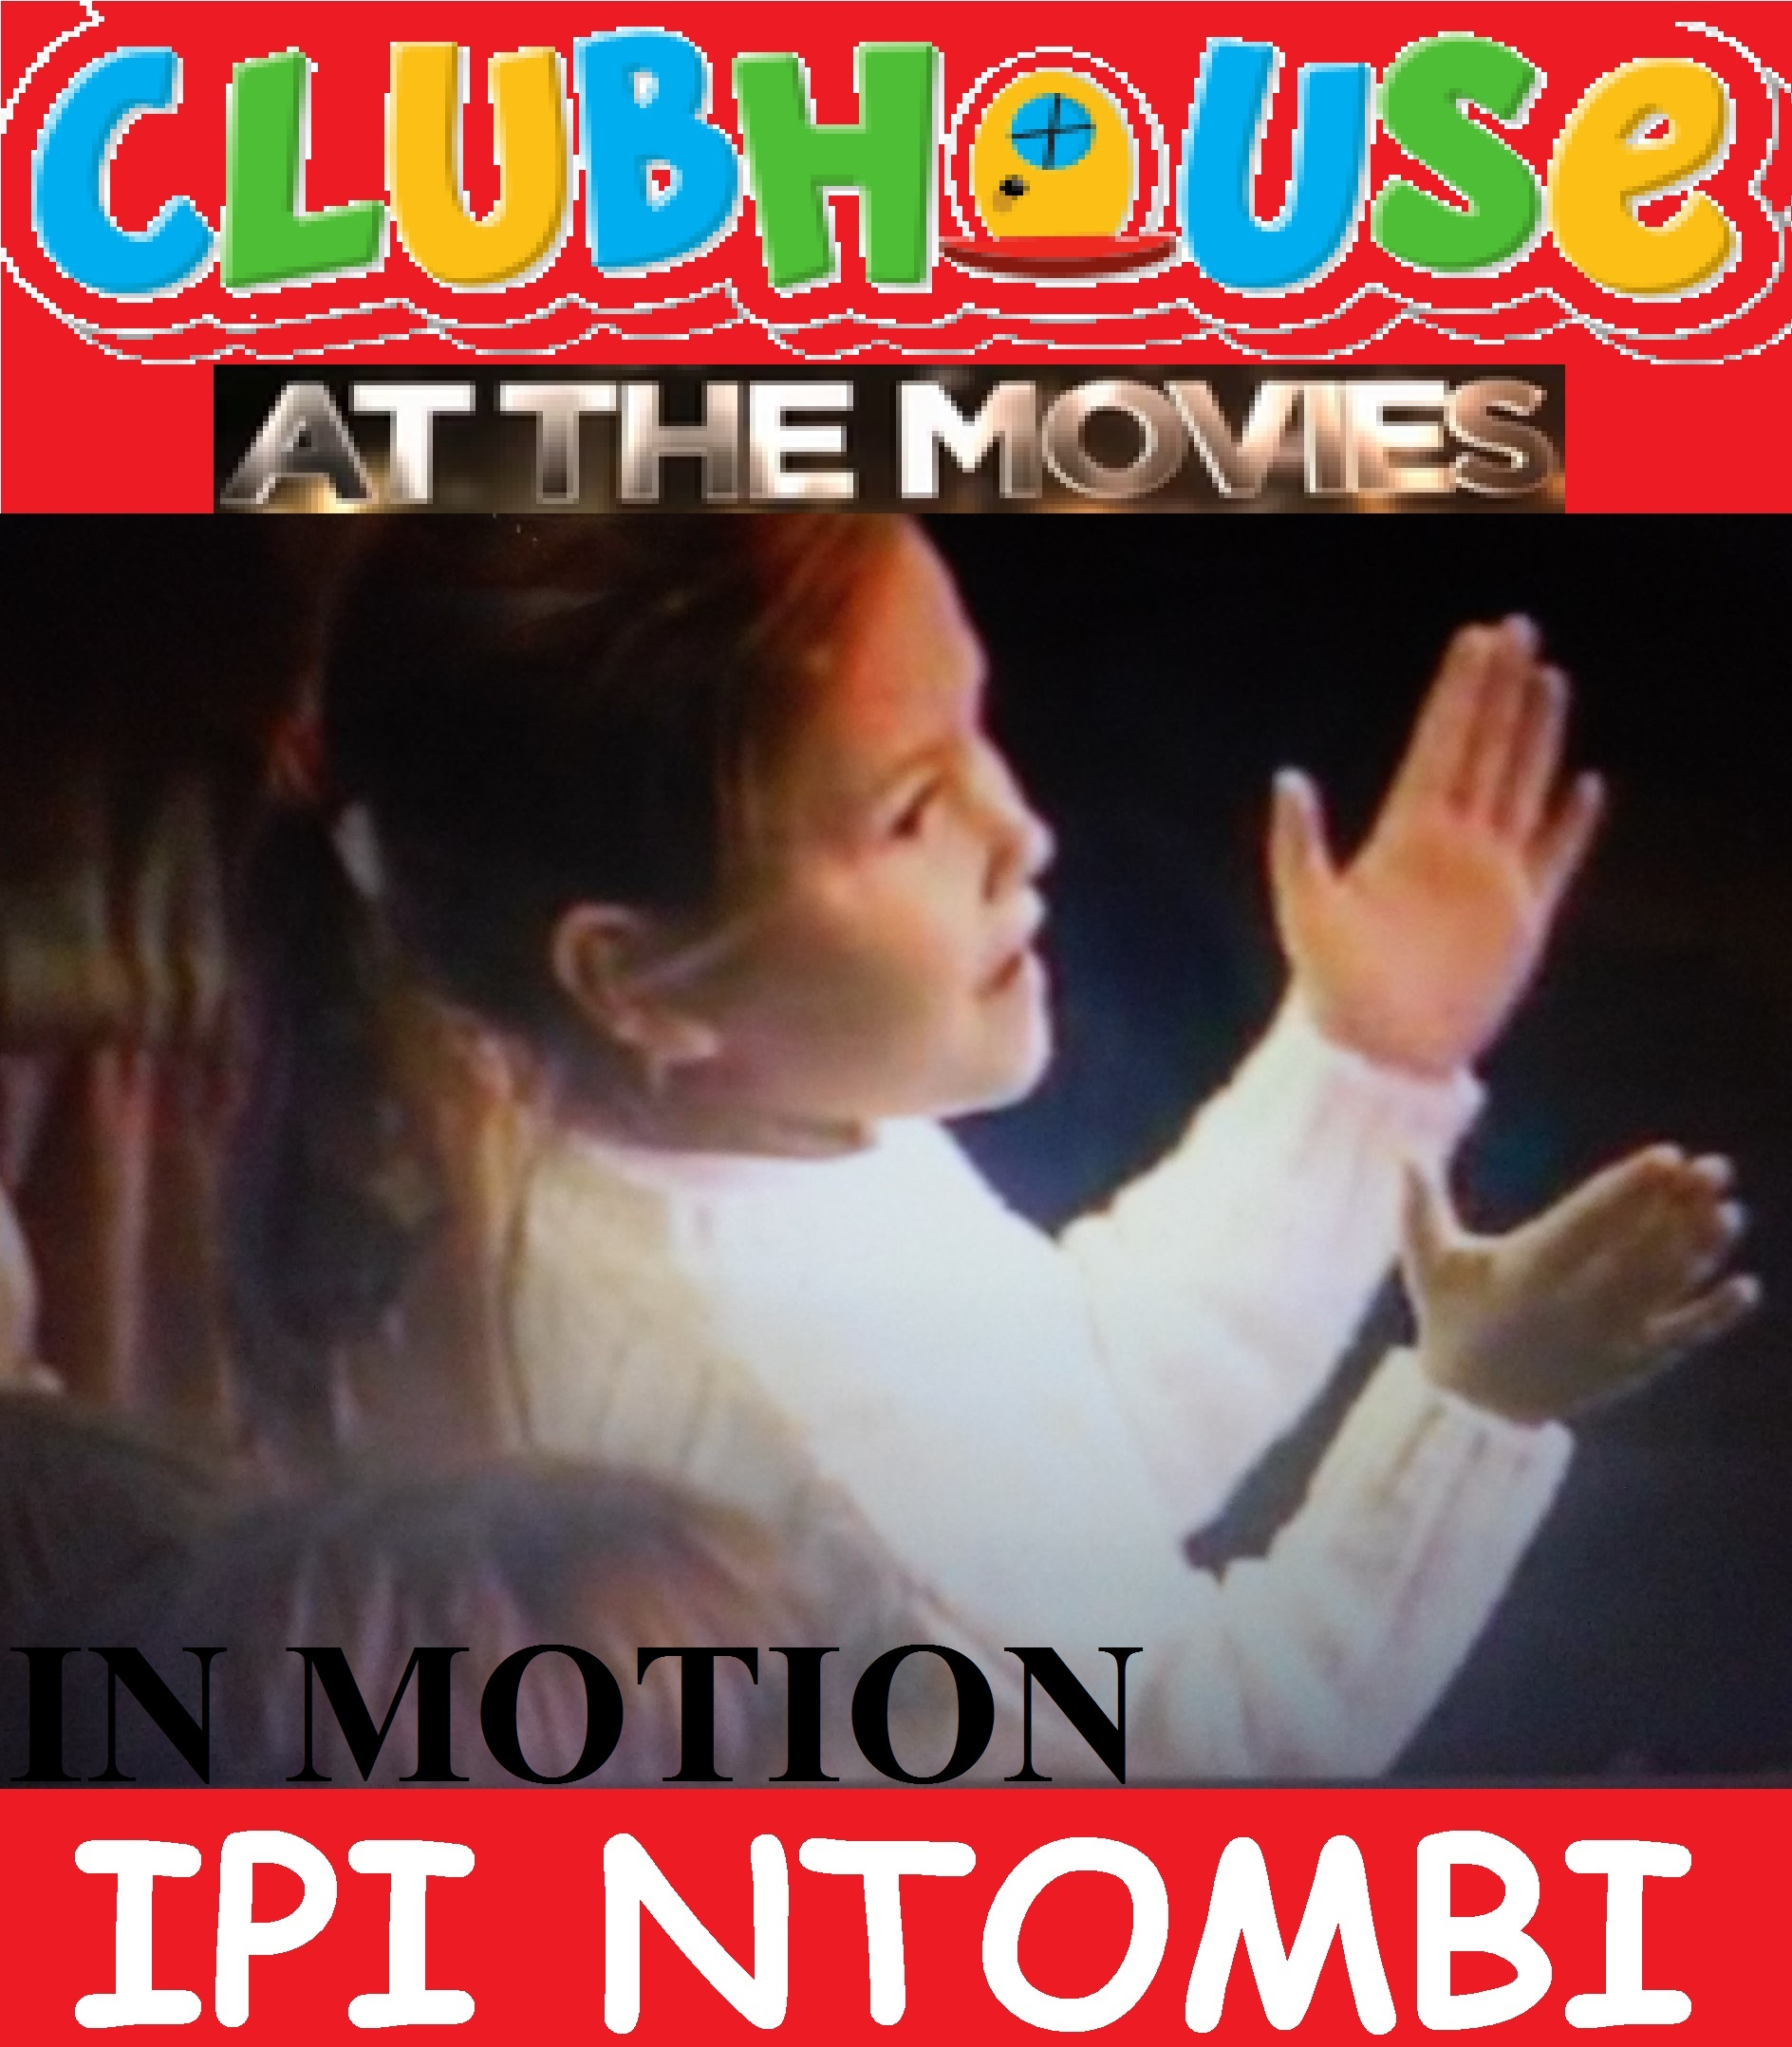 clubhouse at the movies in motion ipi ntombi celebration at